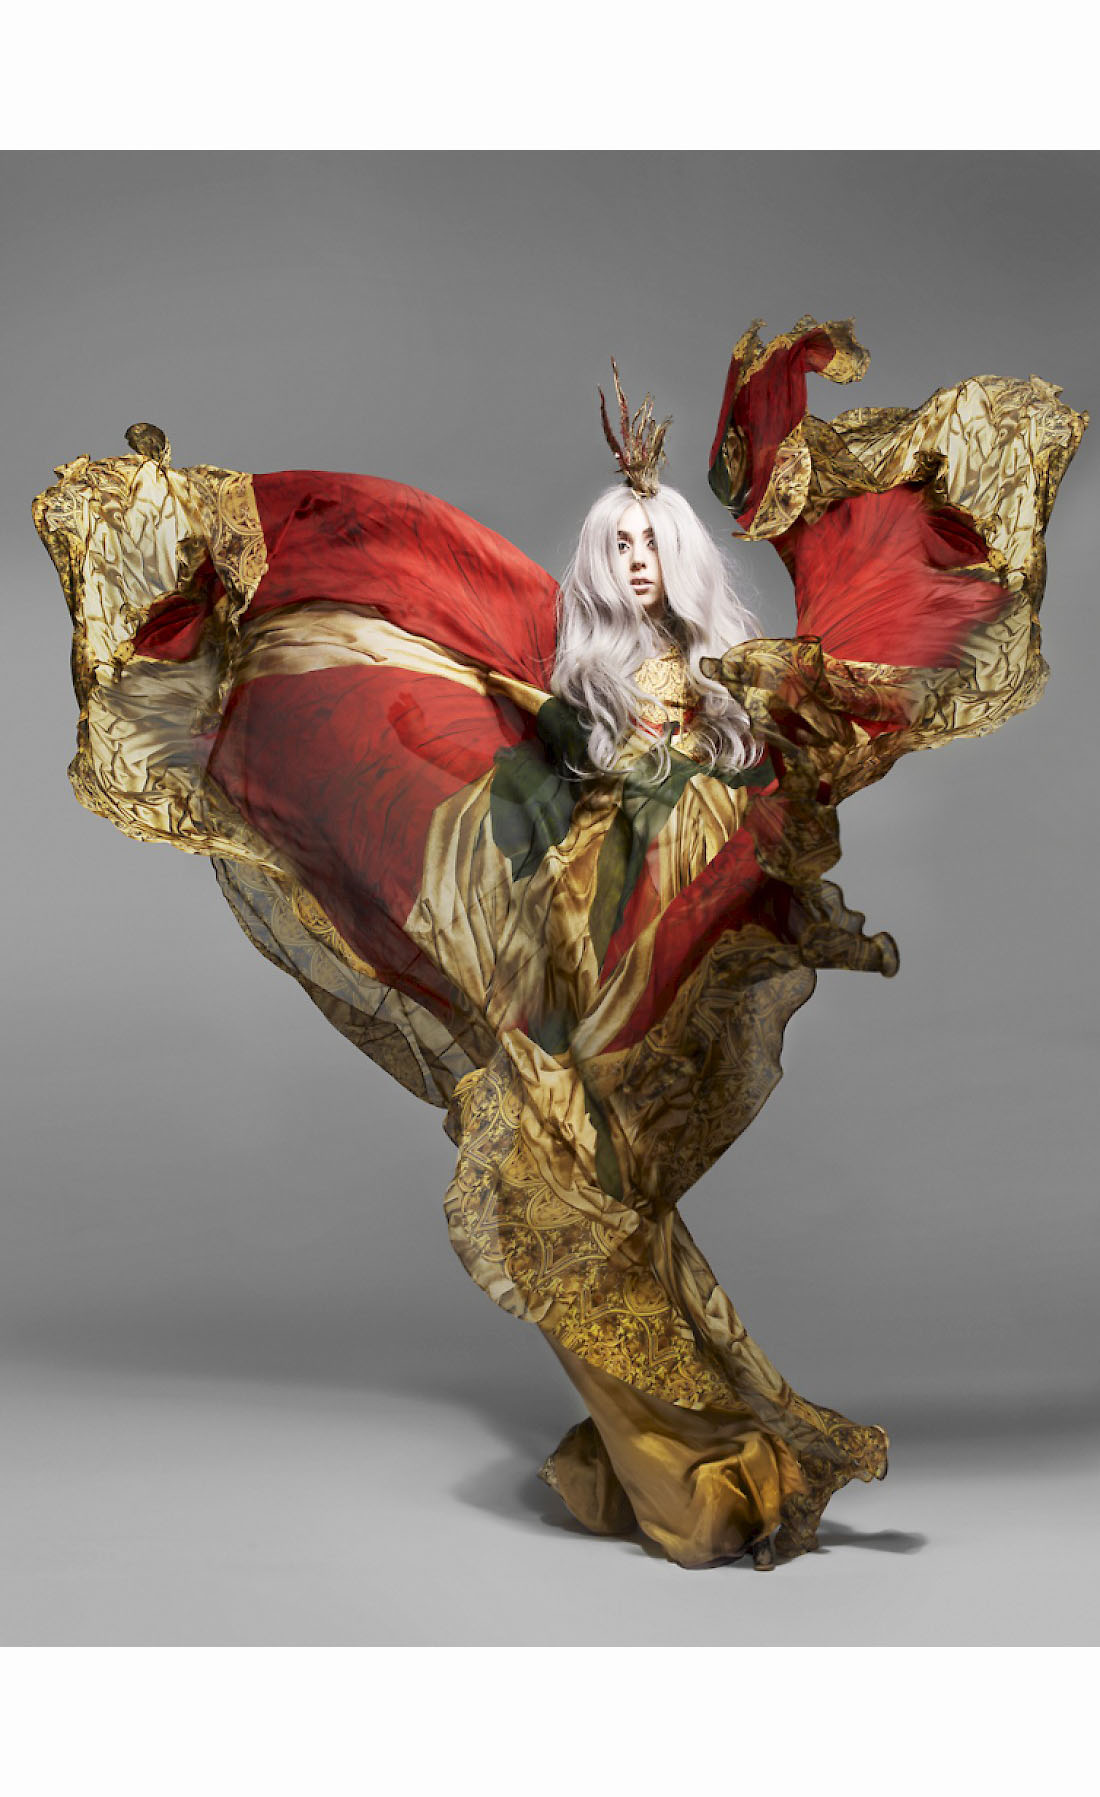 lady-gaga-vanity-fair-2010.jpg